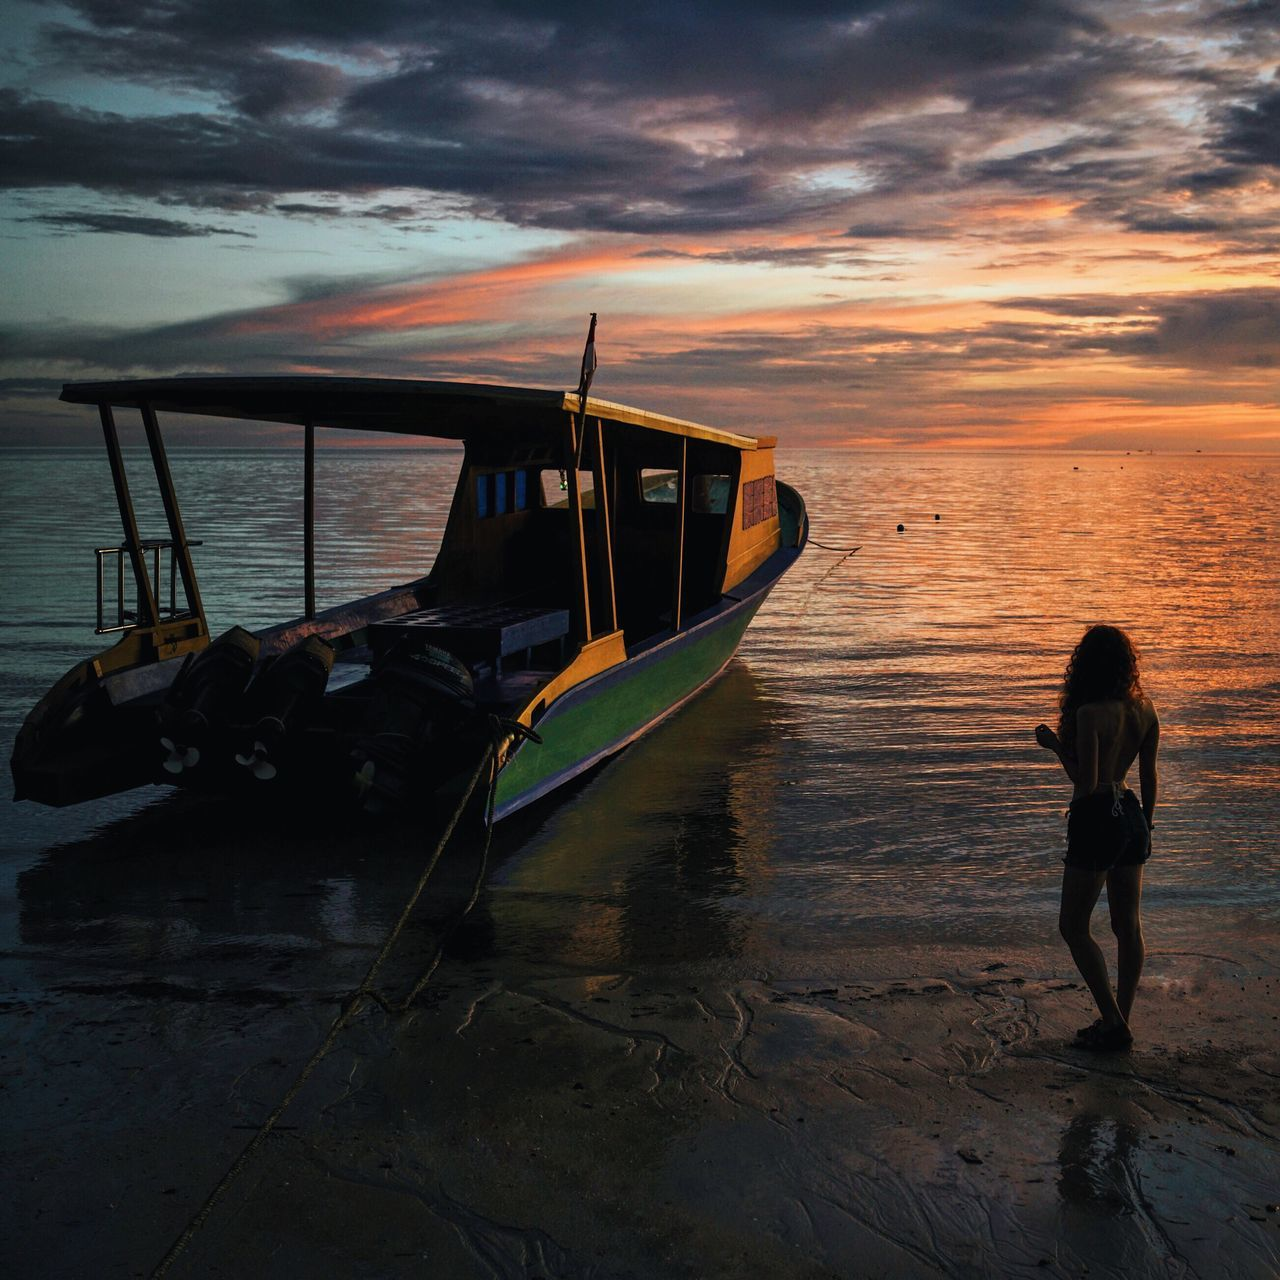 Boat Girl Beach Sea Sunset Colors Orange Color INDONESIA Sulawesi Bunaken Island Adventure Showcase July My Year My View